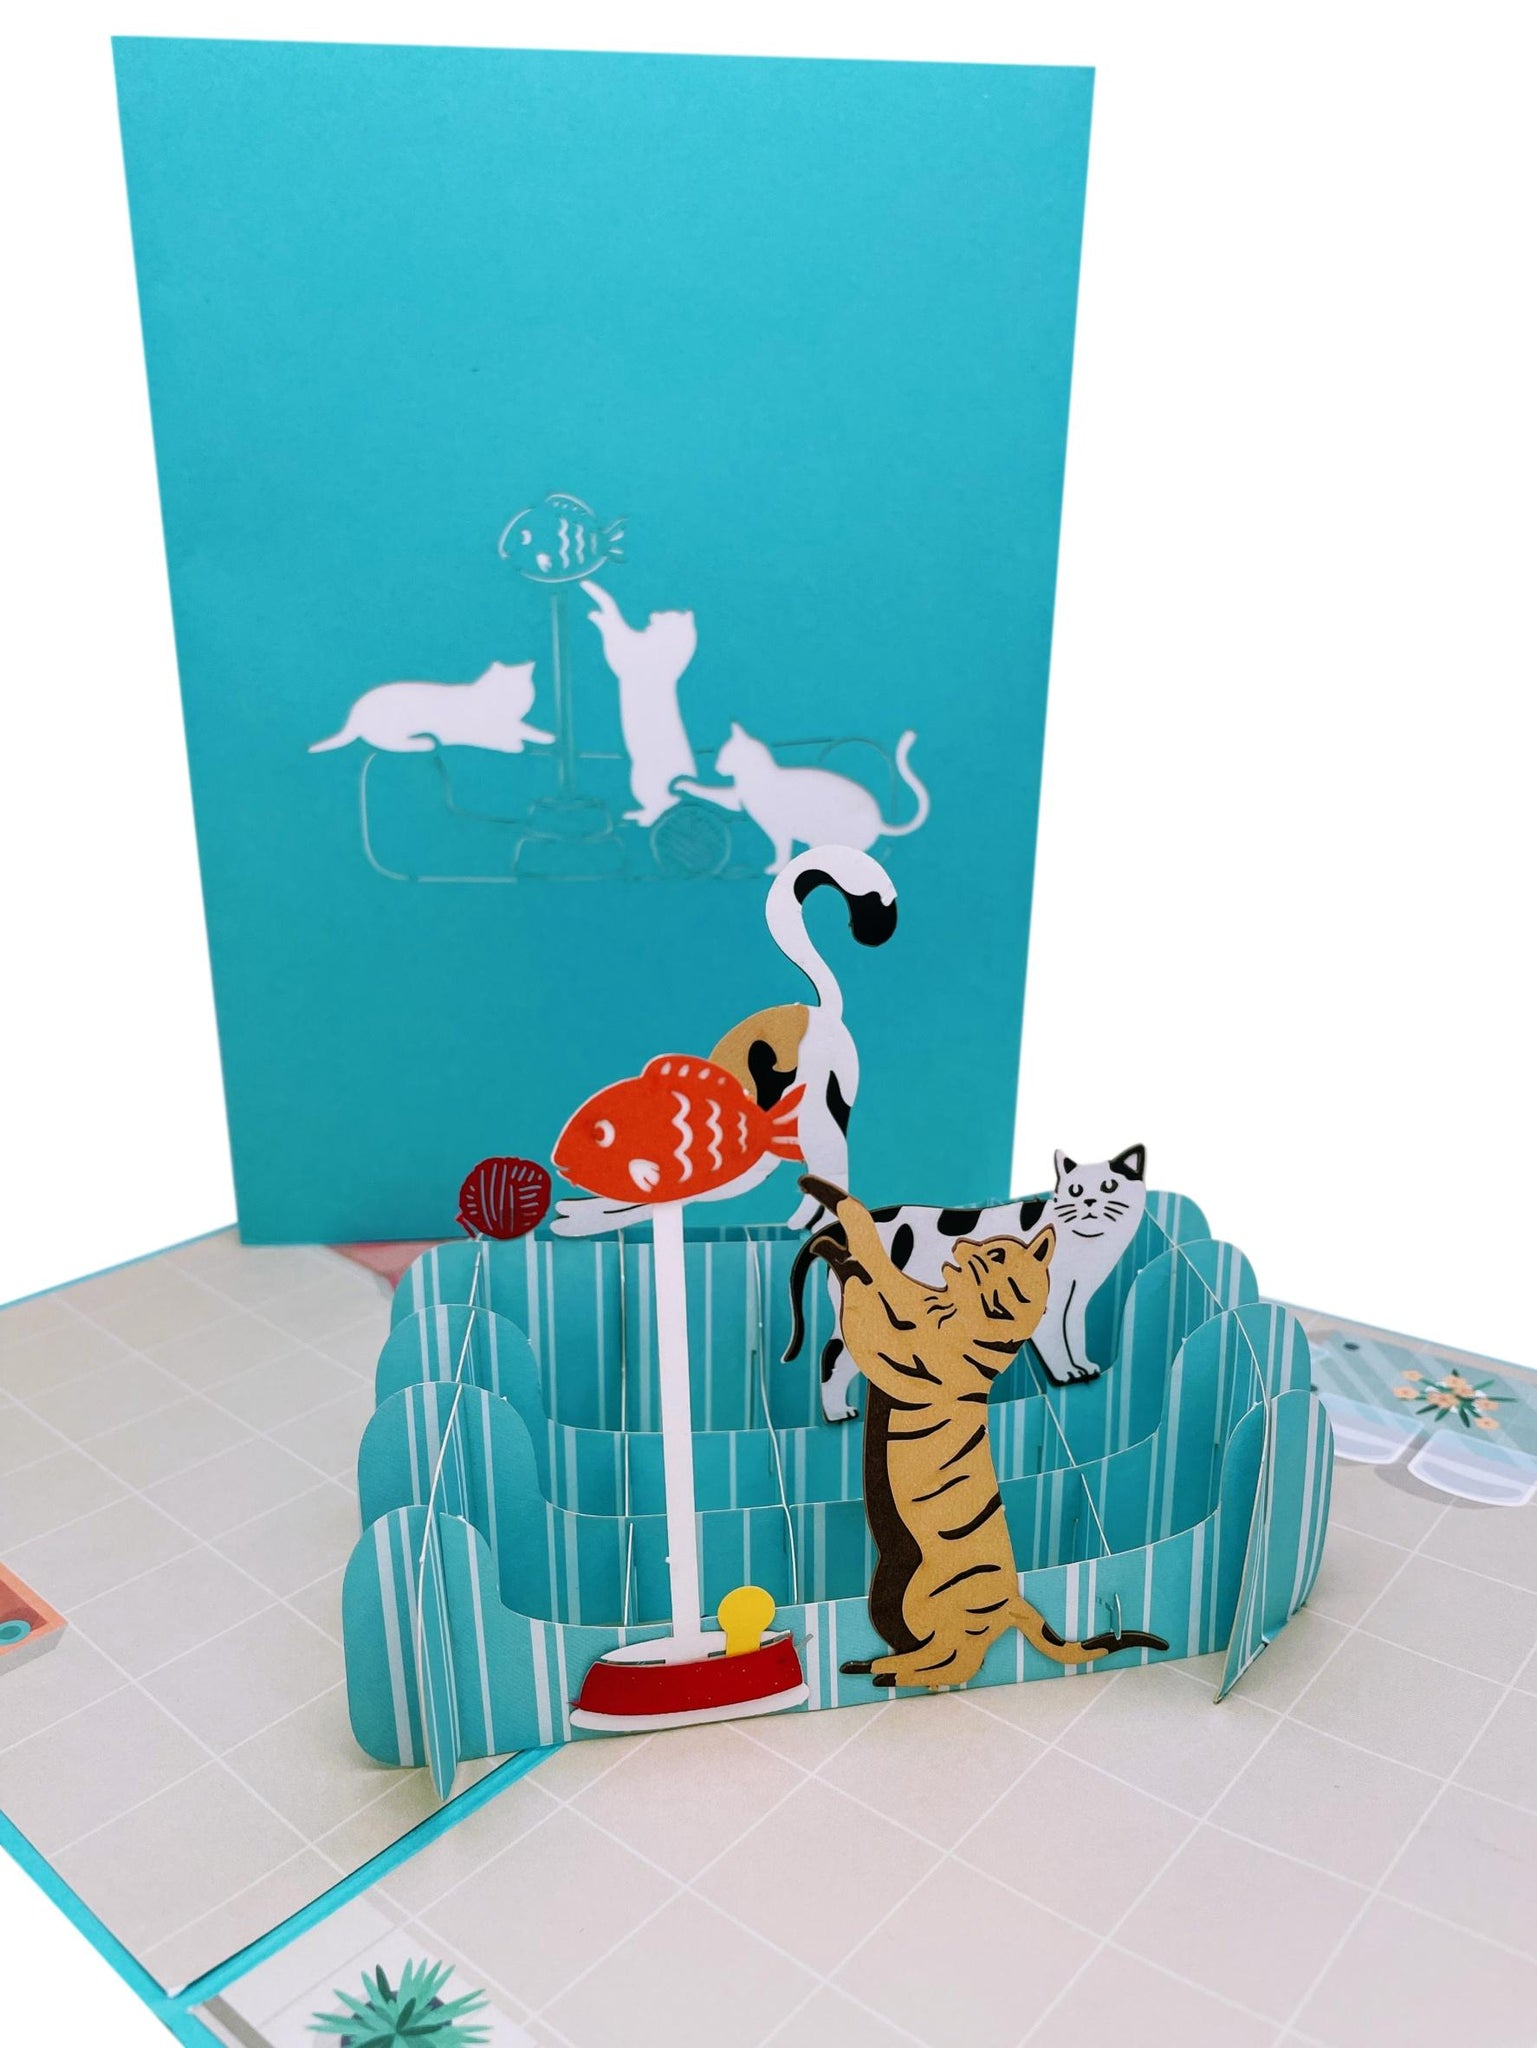 Playful Cats 3D Pop Up Greeting Card - Birthday, Thinking of You, Fun, Thank You, Friendship, Anniversary, Retirement, Cat Gifts, Cool, Love